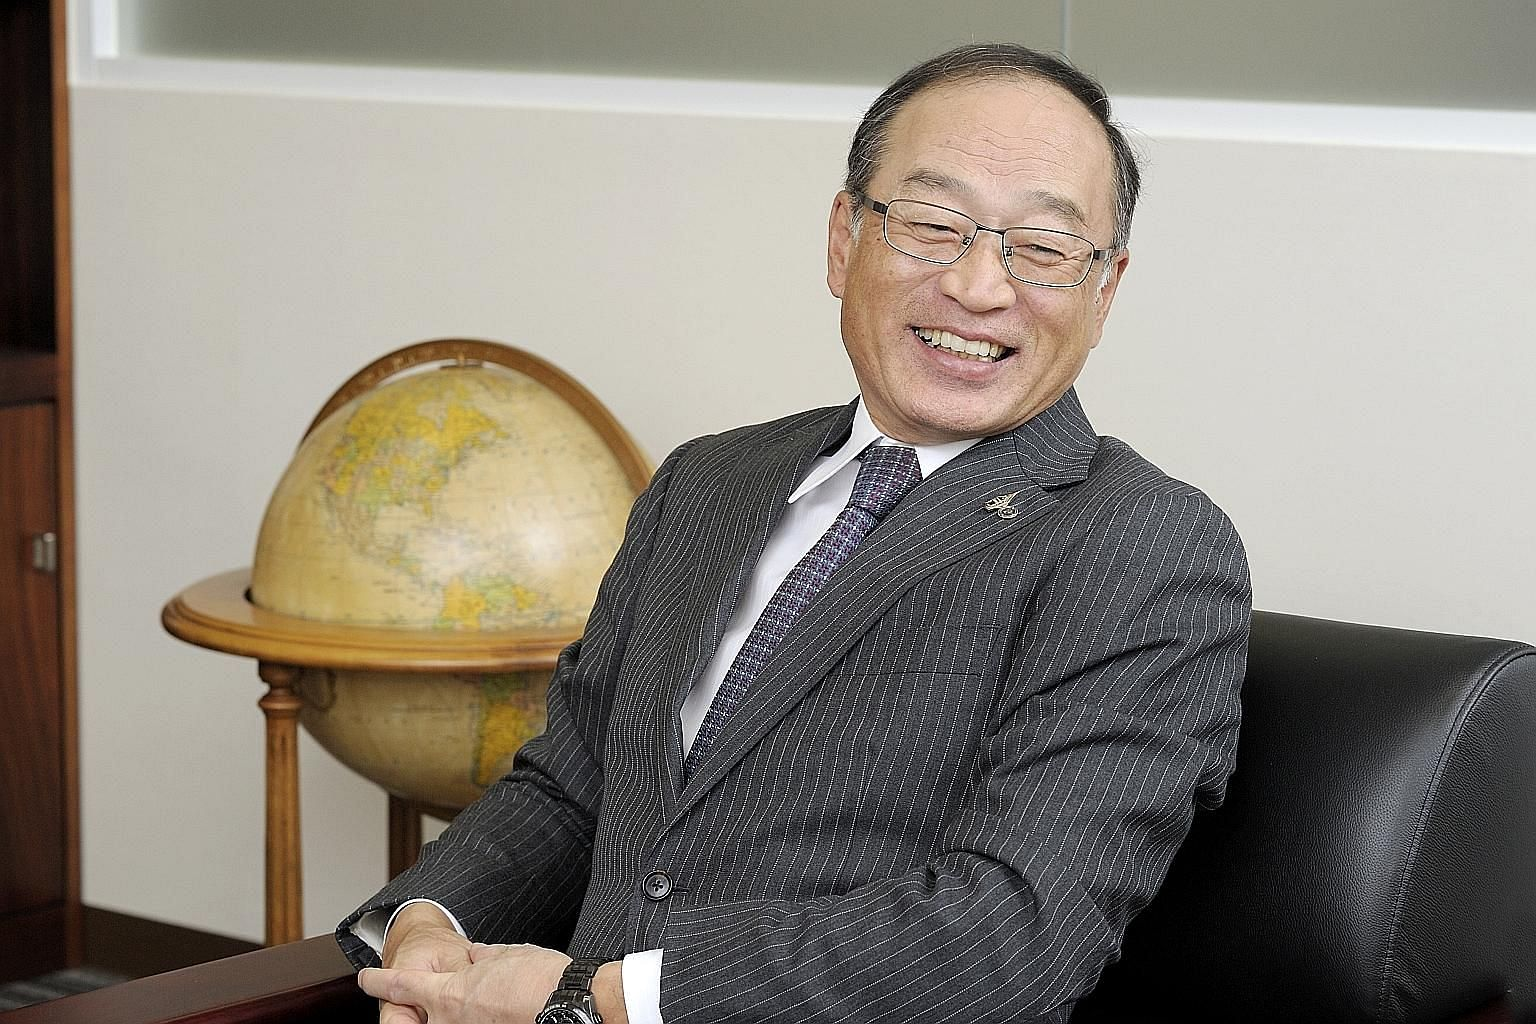 Mr Shu Itoh, president of Japan's Pilot Corp, has been with the company for 39 years and was given charge of it last year. He says what sets it apart from competitors is its attention to quality, with the focus on the ball and tip of the pen.